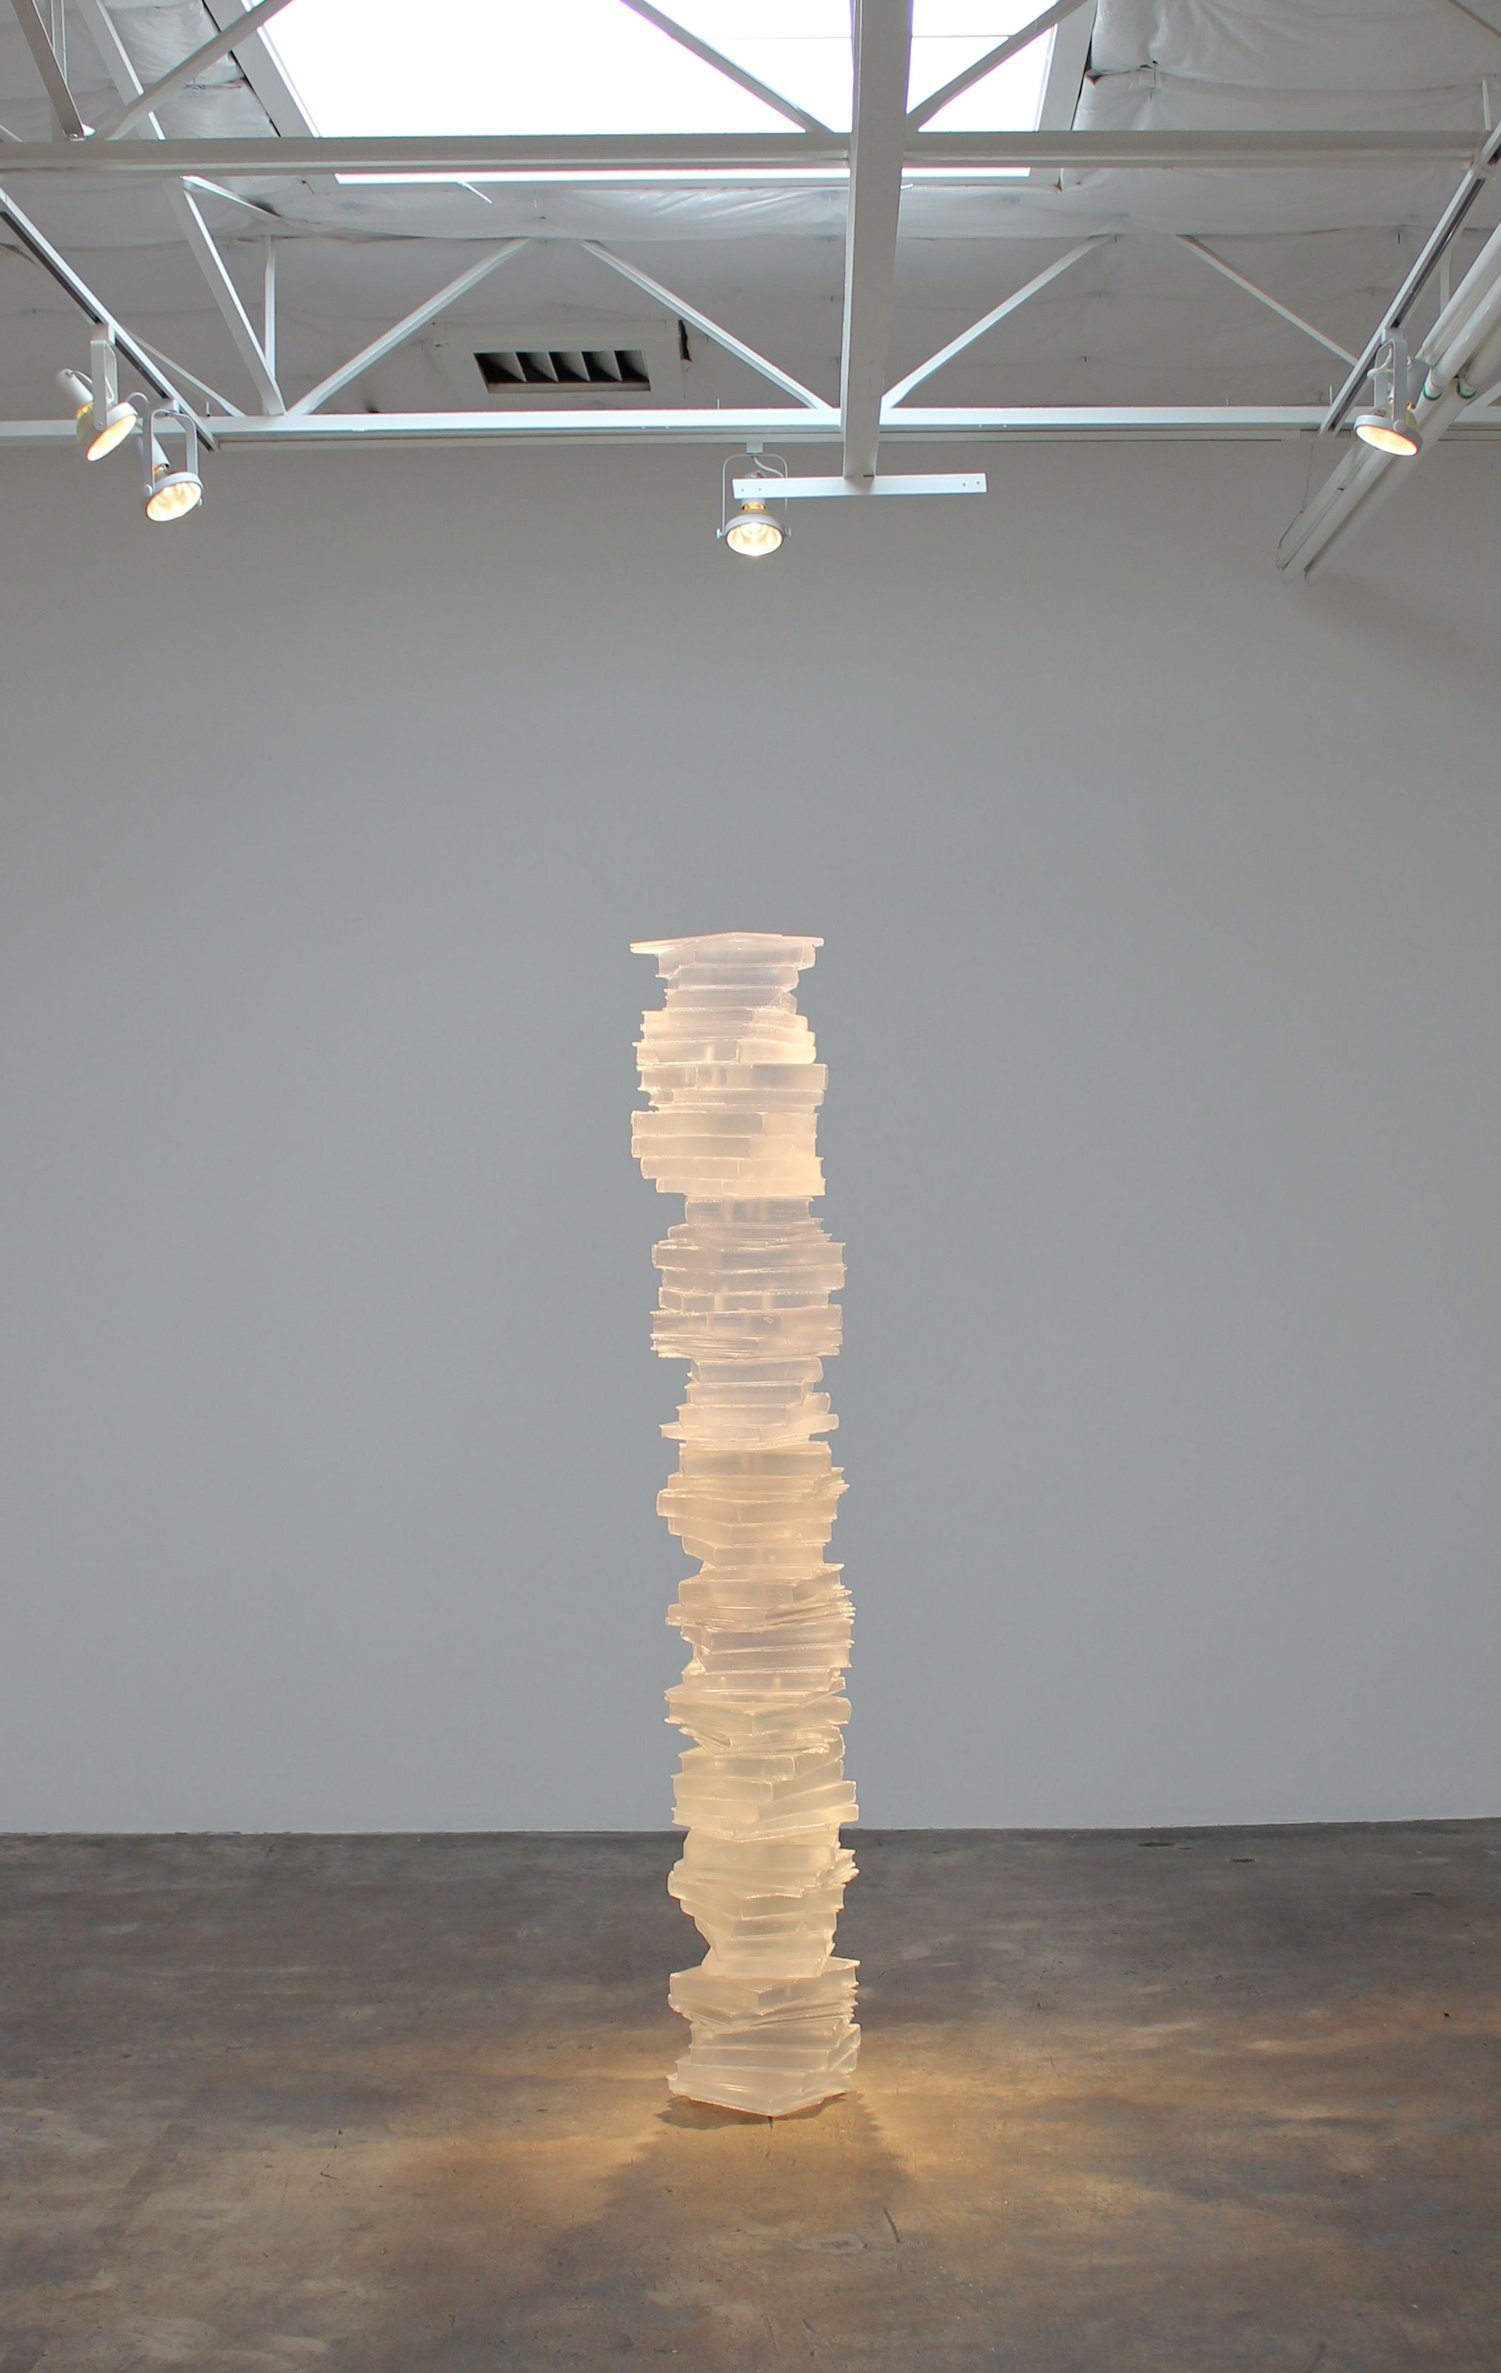 Joseph Havel, Endless (transparent), 2013-2014, cast polyurethane resin, 84 x 15 x 14 inches